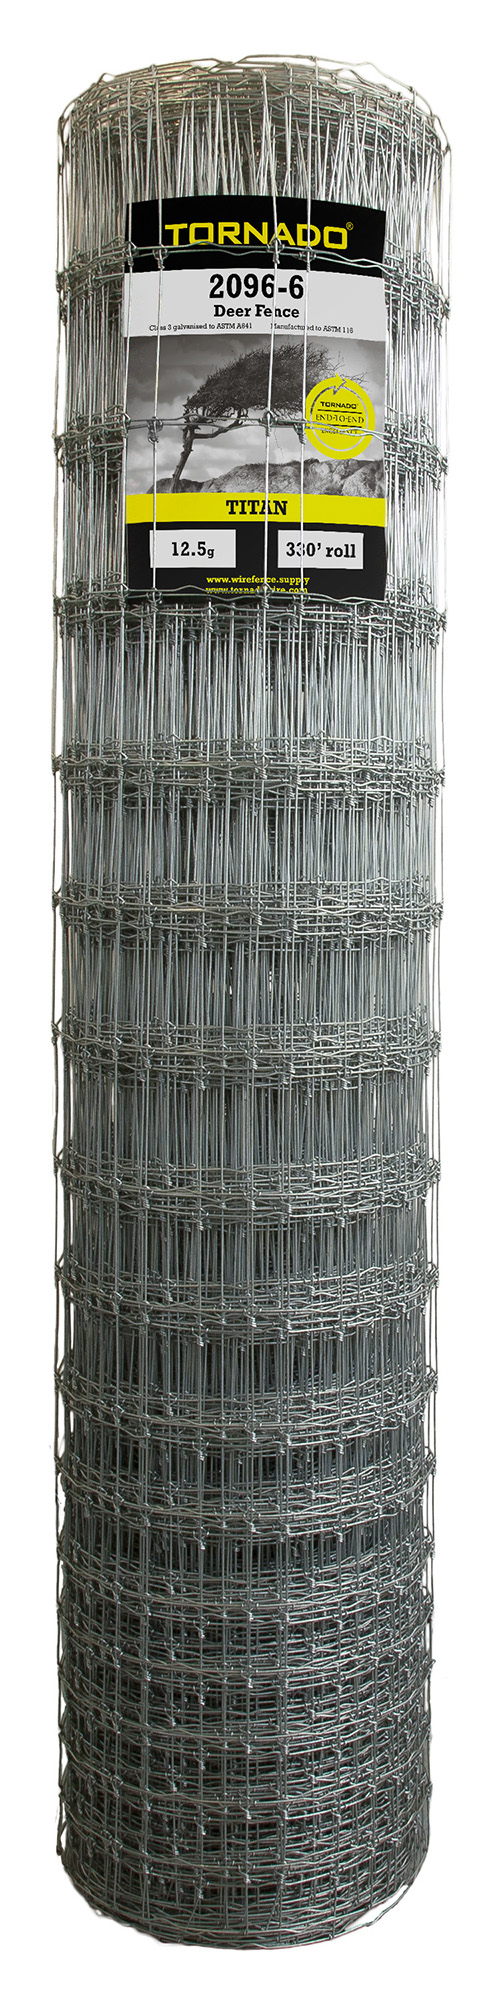 Woven Wire Fence | Product categories | McArthur Lumber & Post